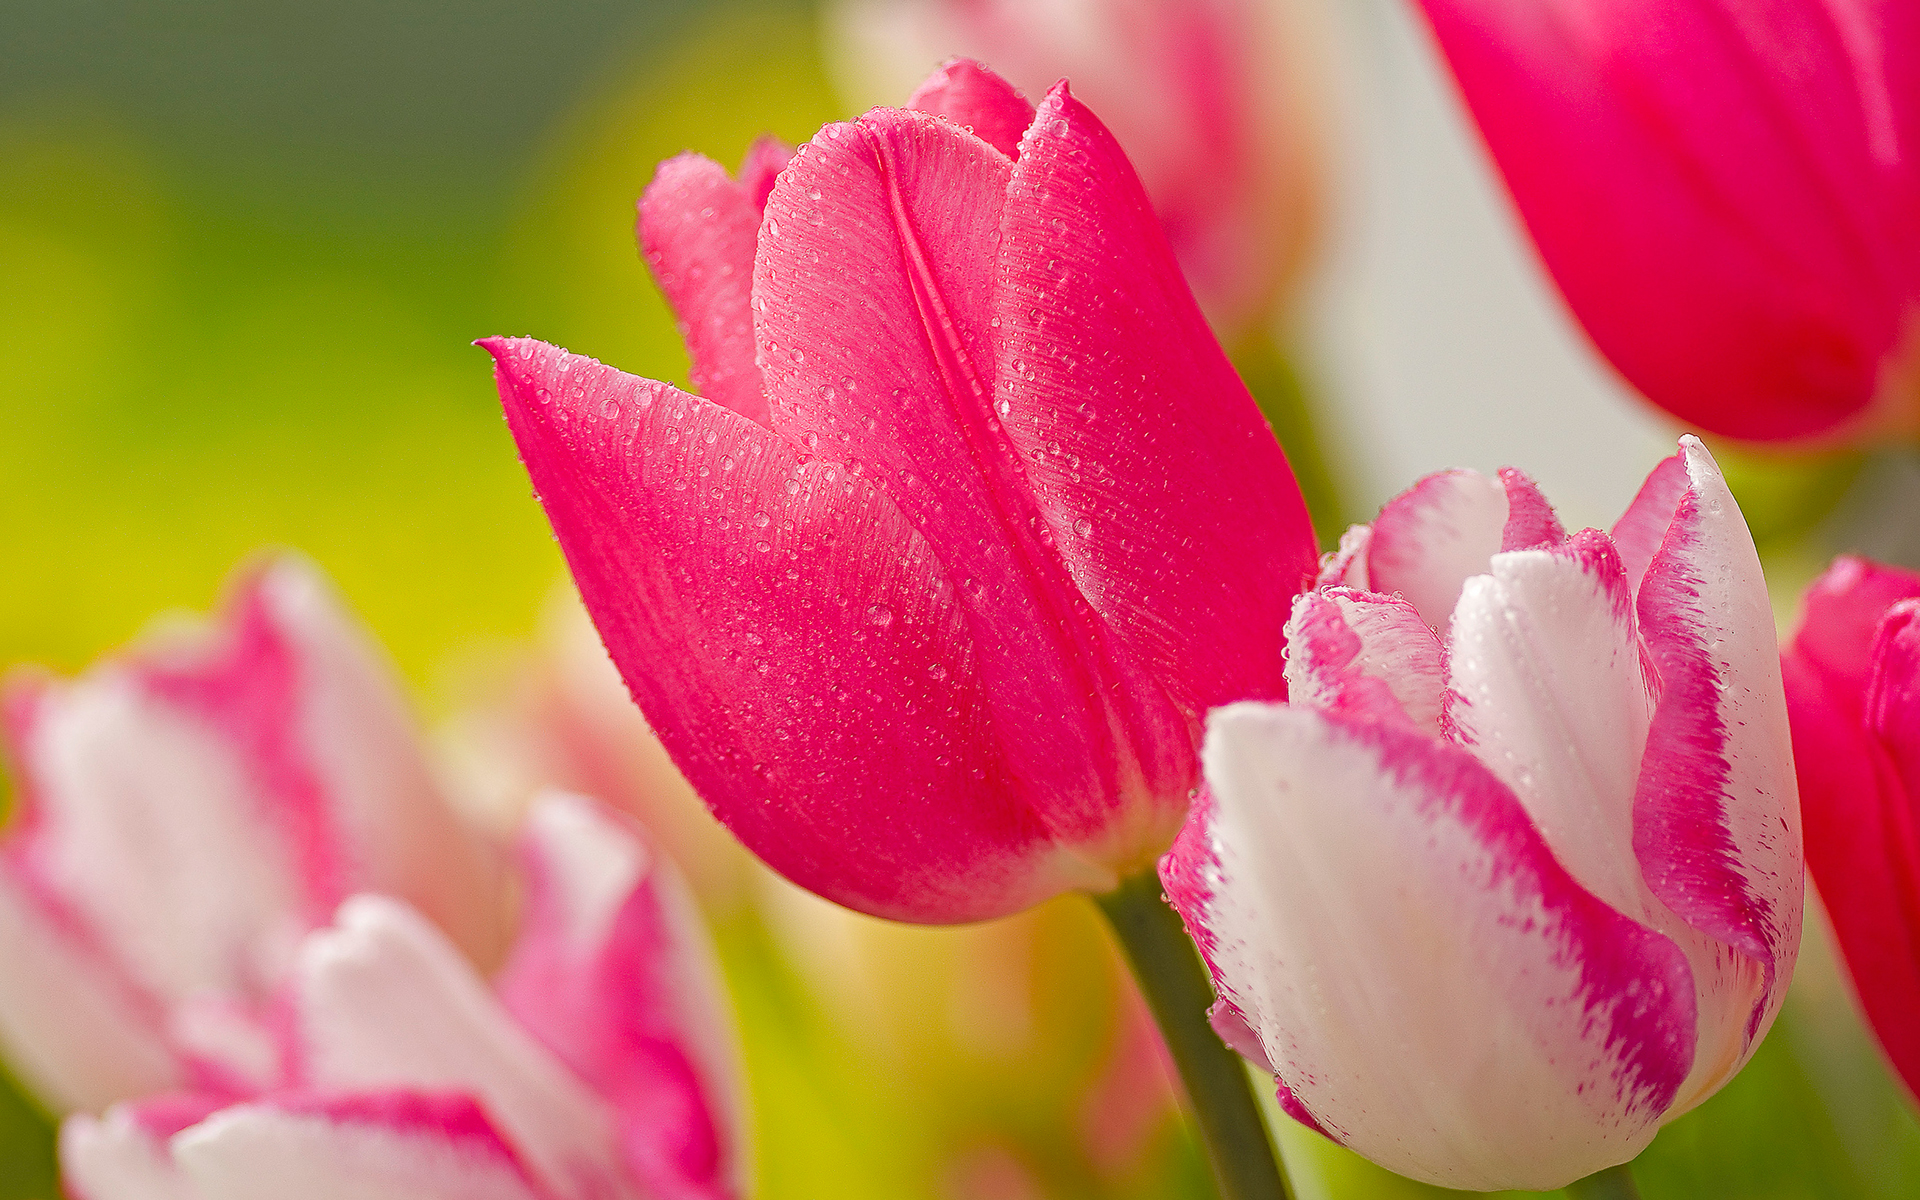 tulip flower images free